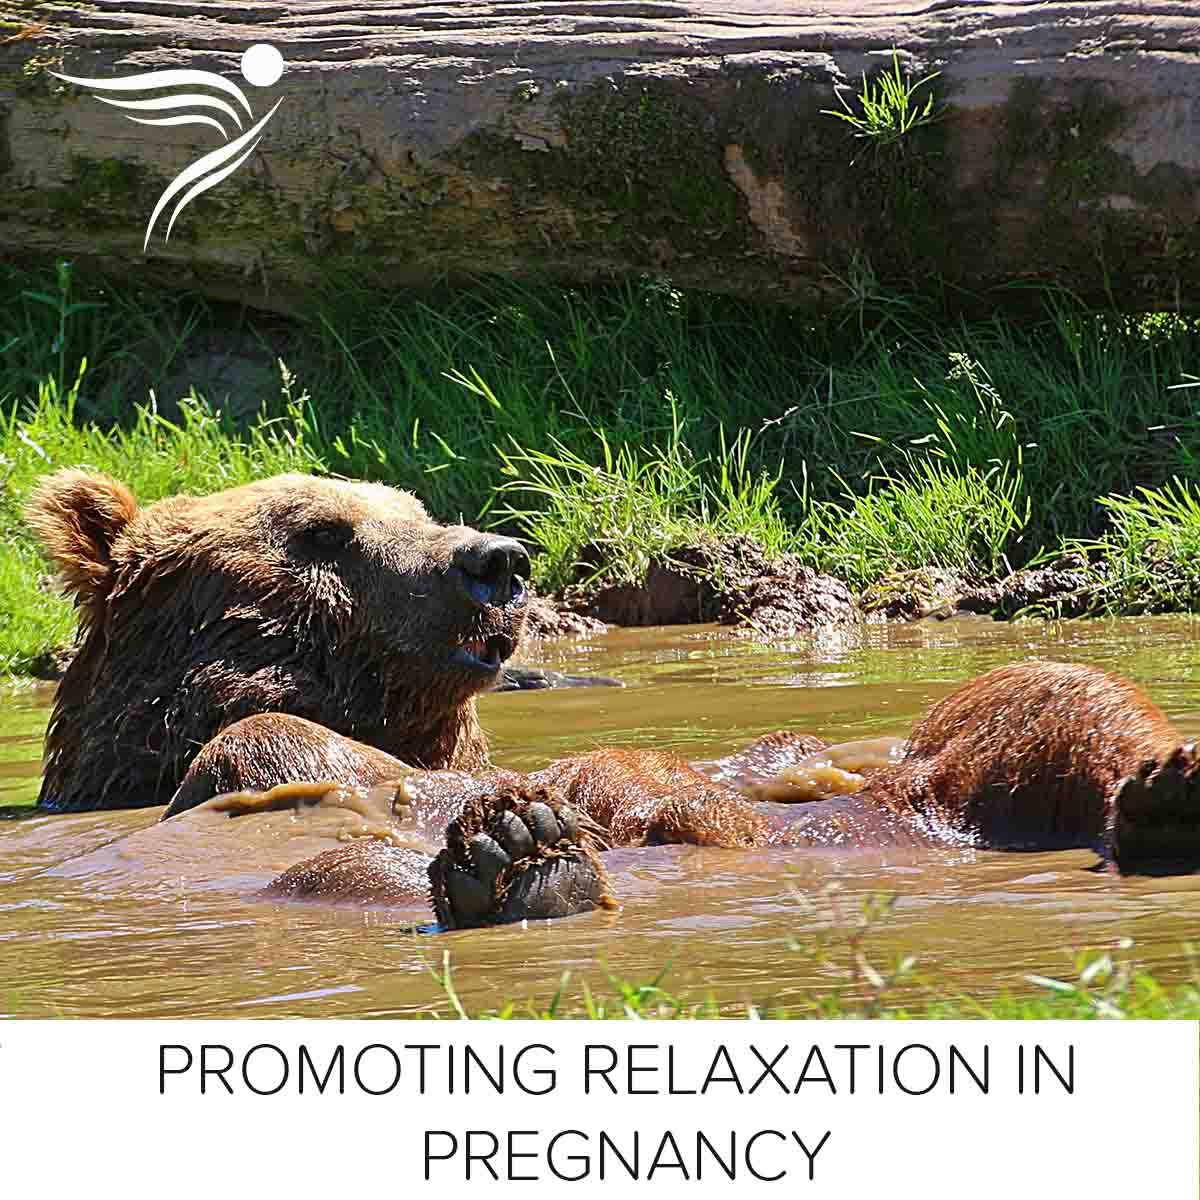 relaxed-bear-fb.jpg